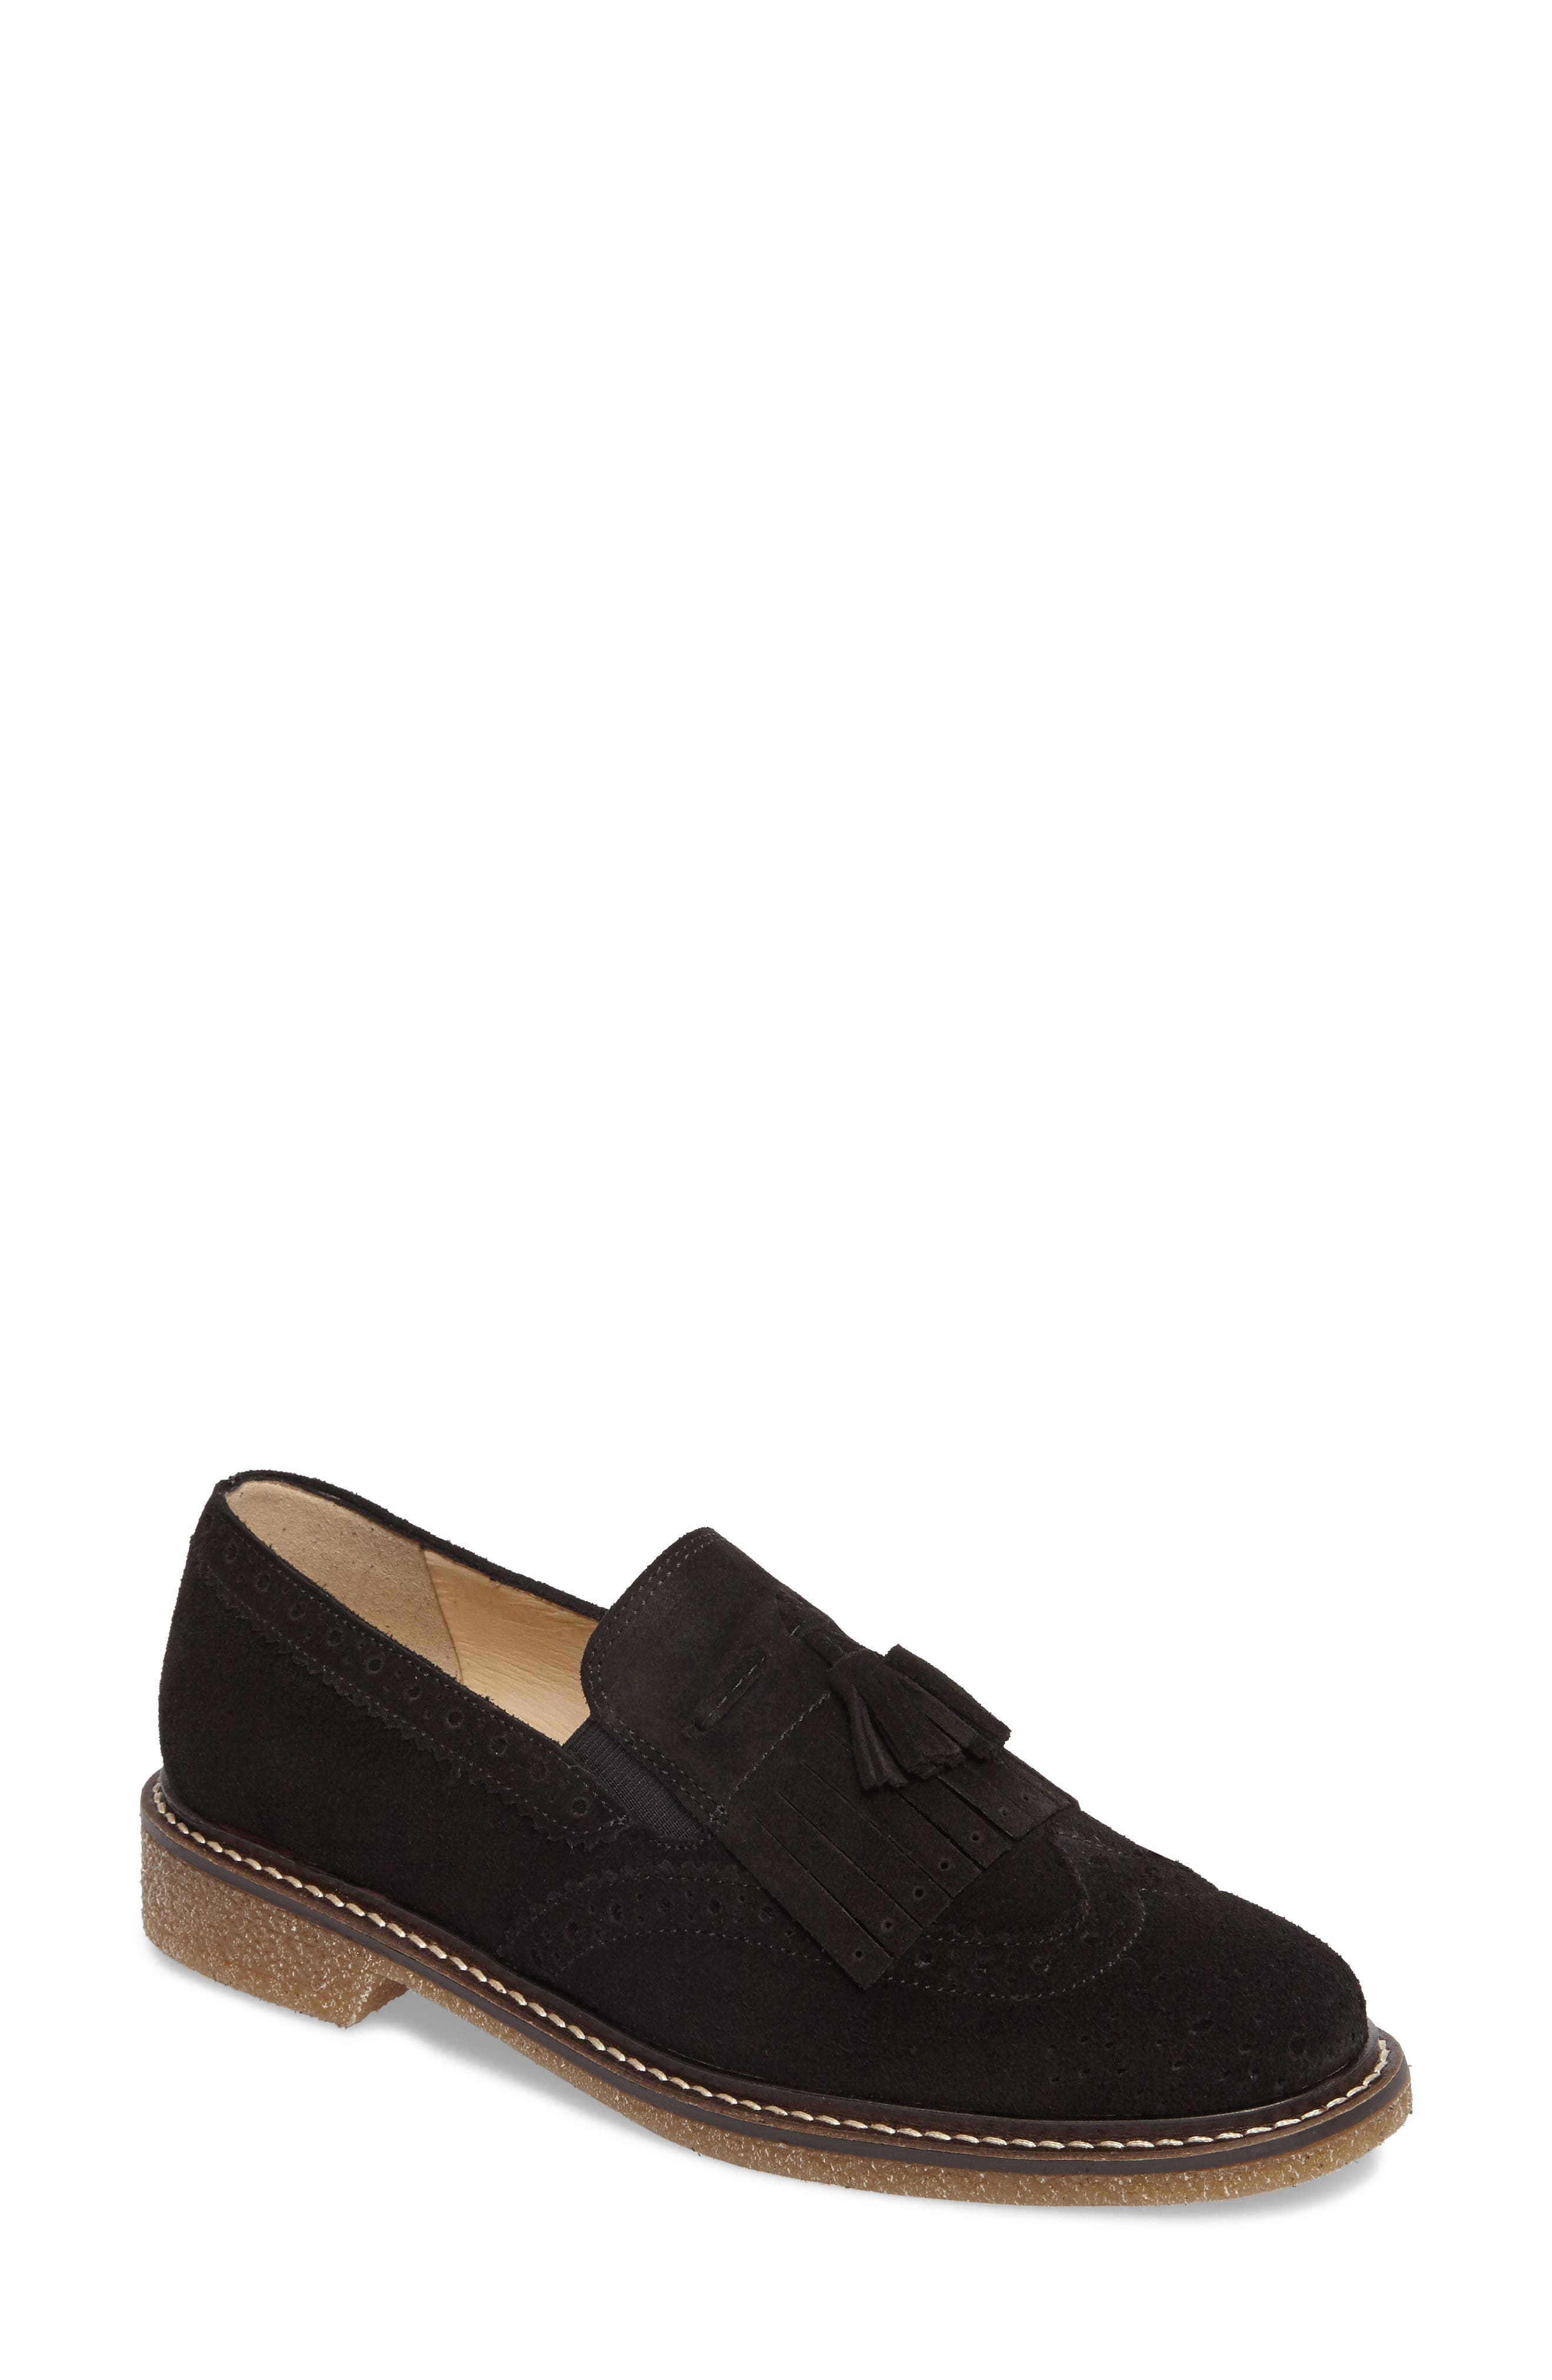 Korie Oxford,                         Main,                         color,